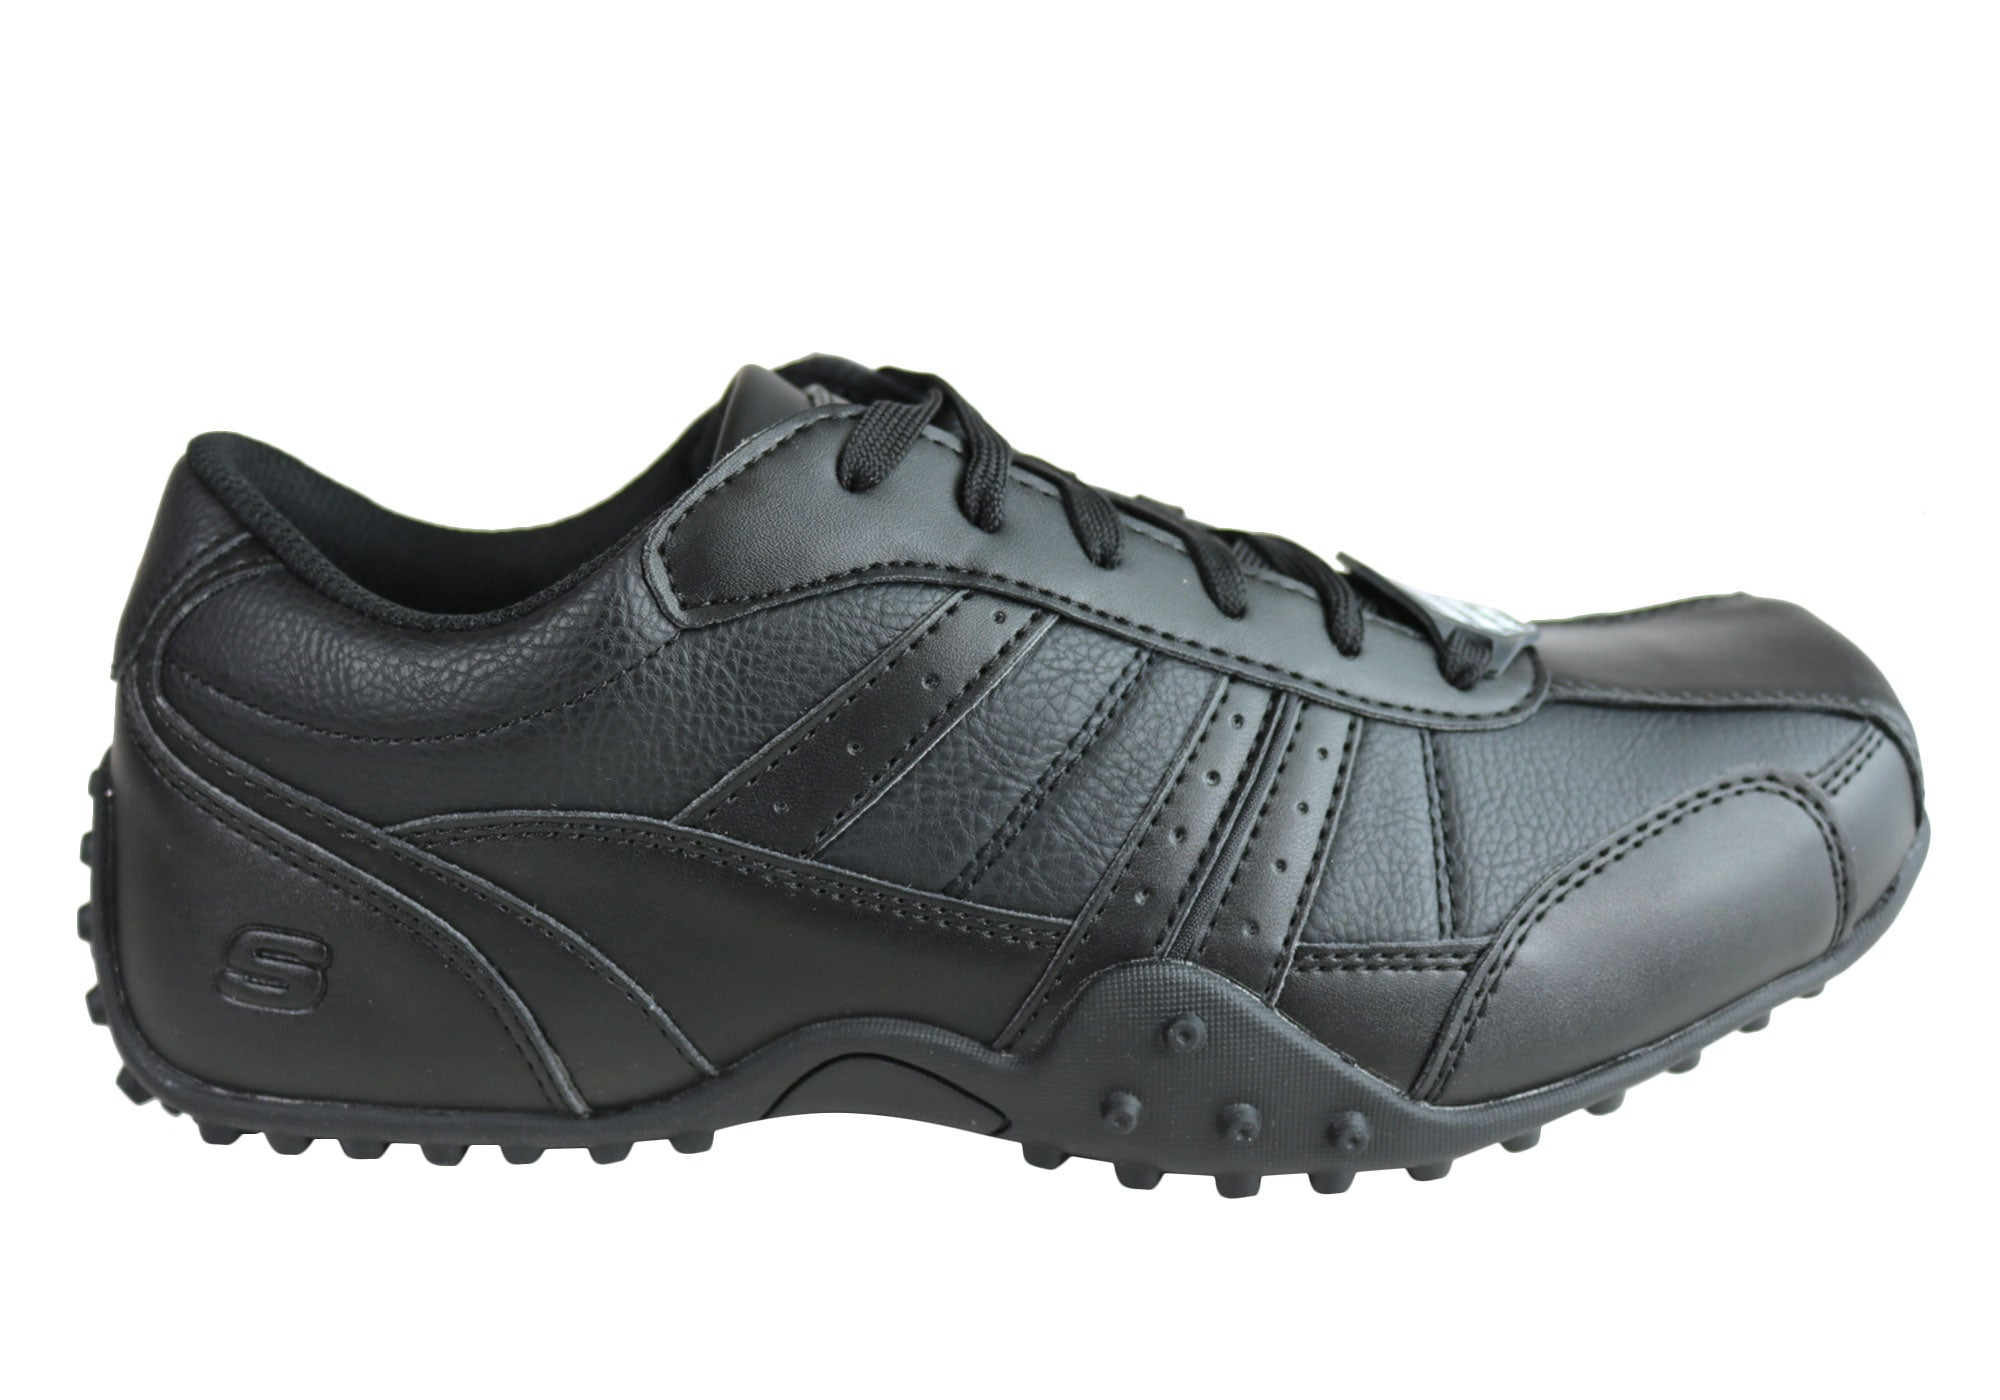 newest 15a66 5729d Home Skechers Mens Relaxed Fit Elston Lace Up Slip Resistant Memory Foam Work  Shoes. Sale ends in 13 days, 13 hours, 56 minutes, 23 seconds. Black ...